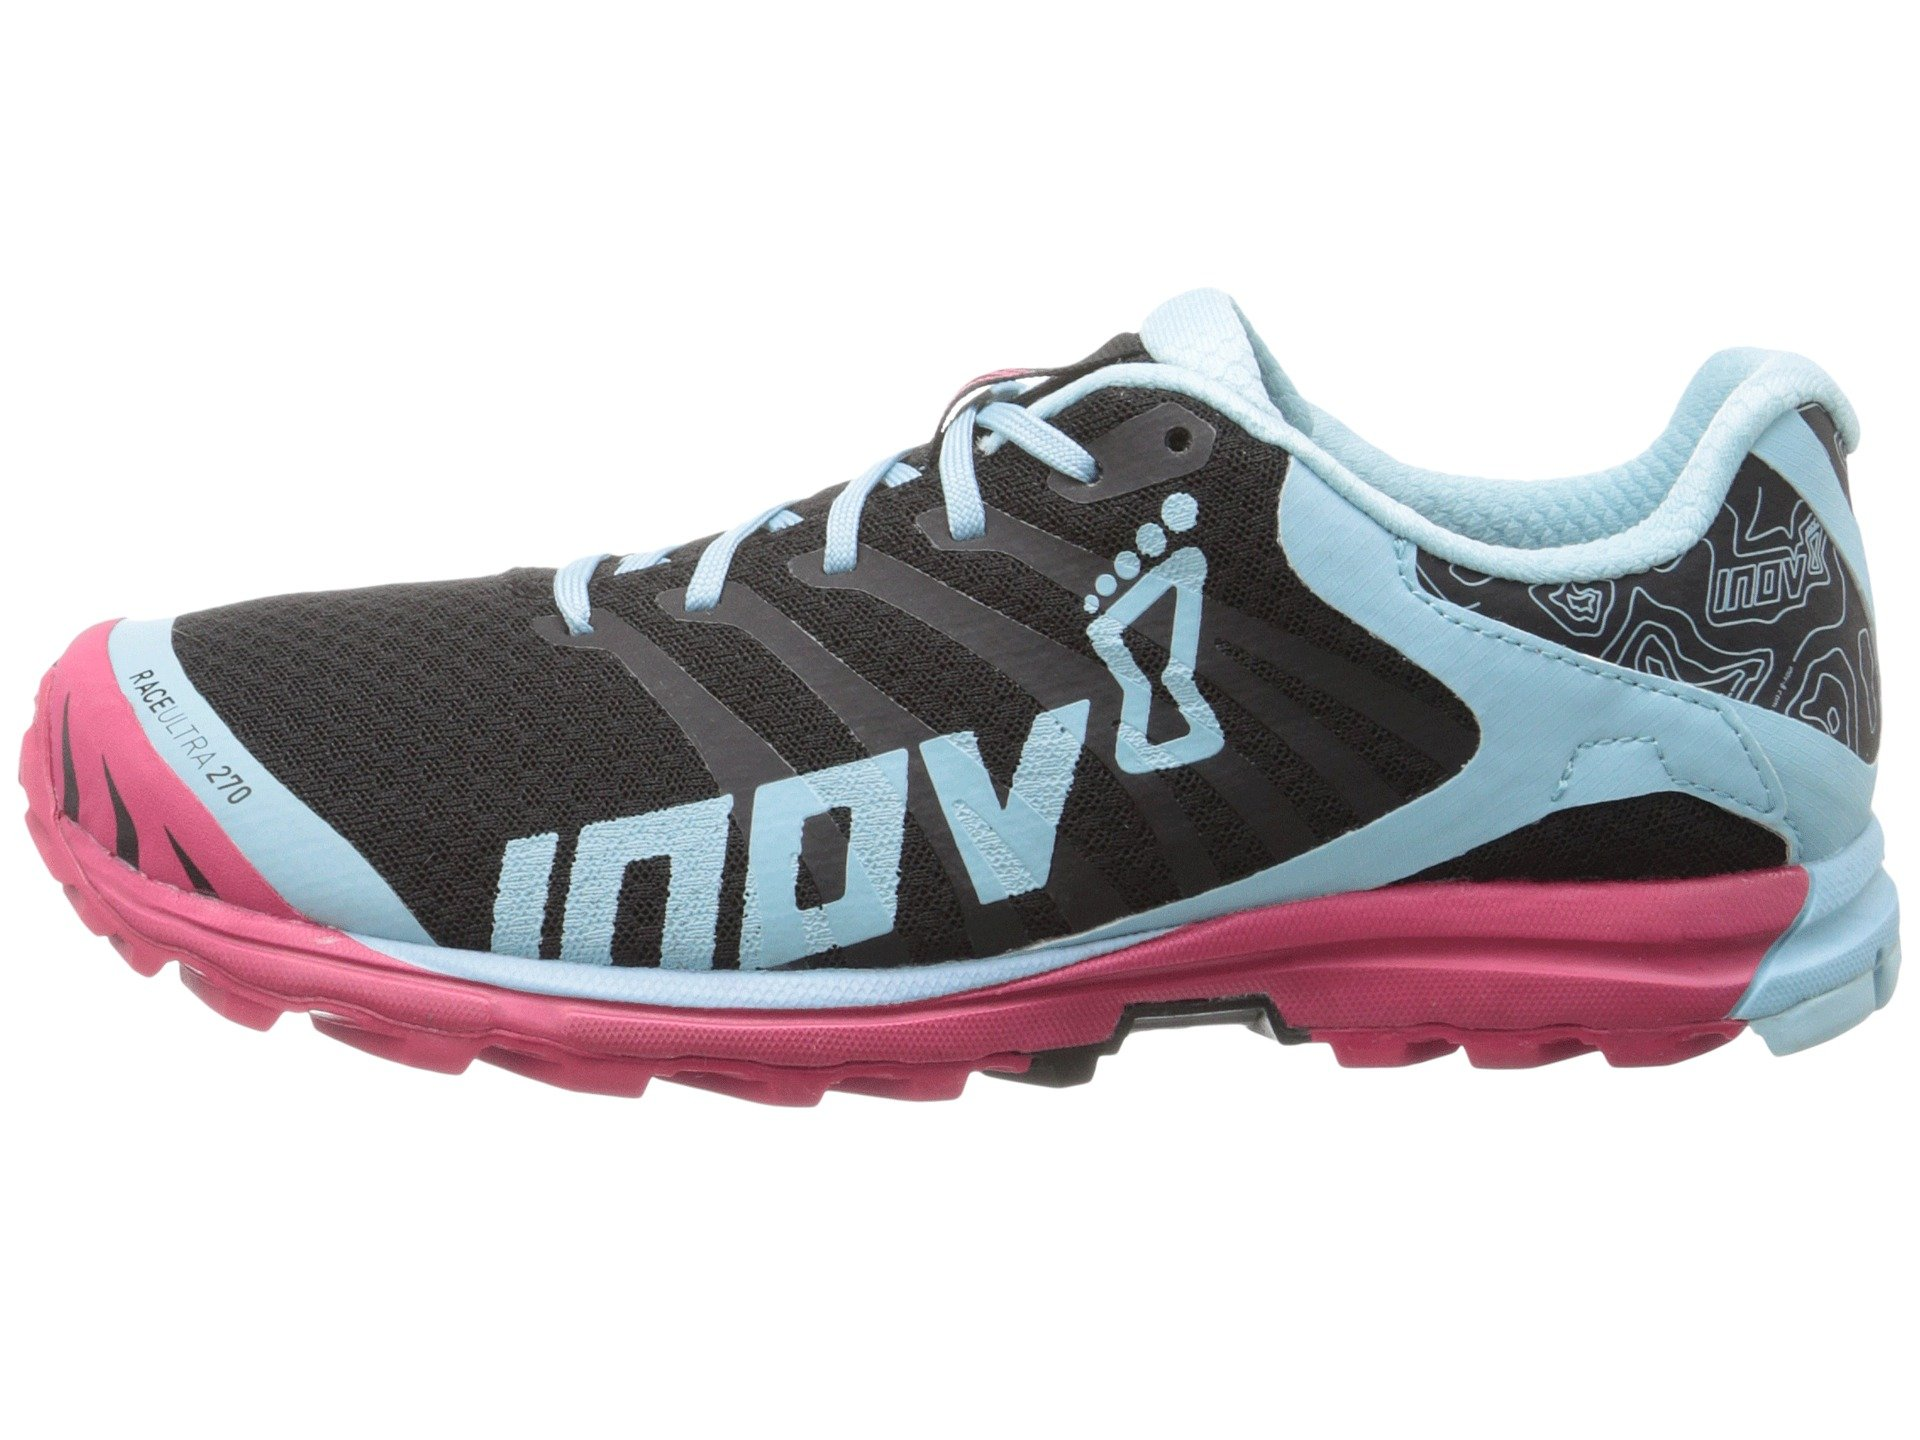 inov-8 Race Ultra 270 at 6pm